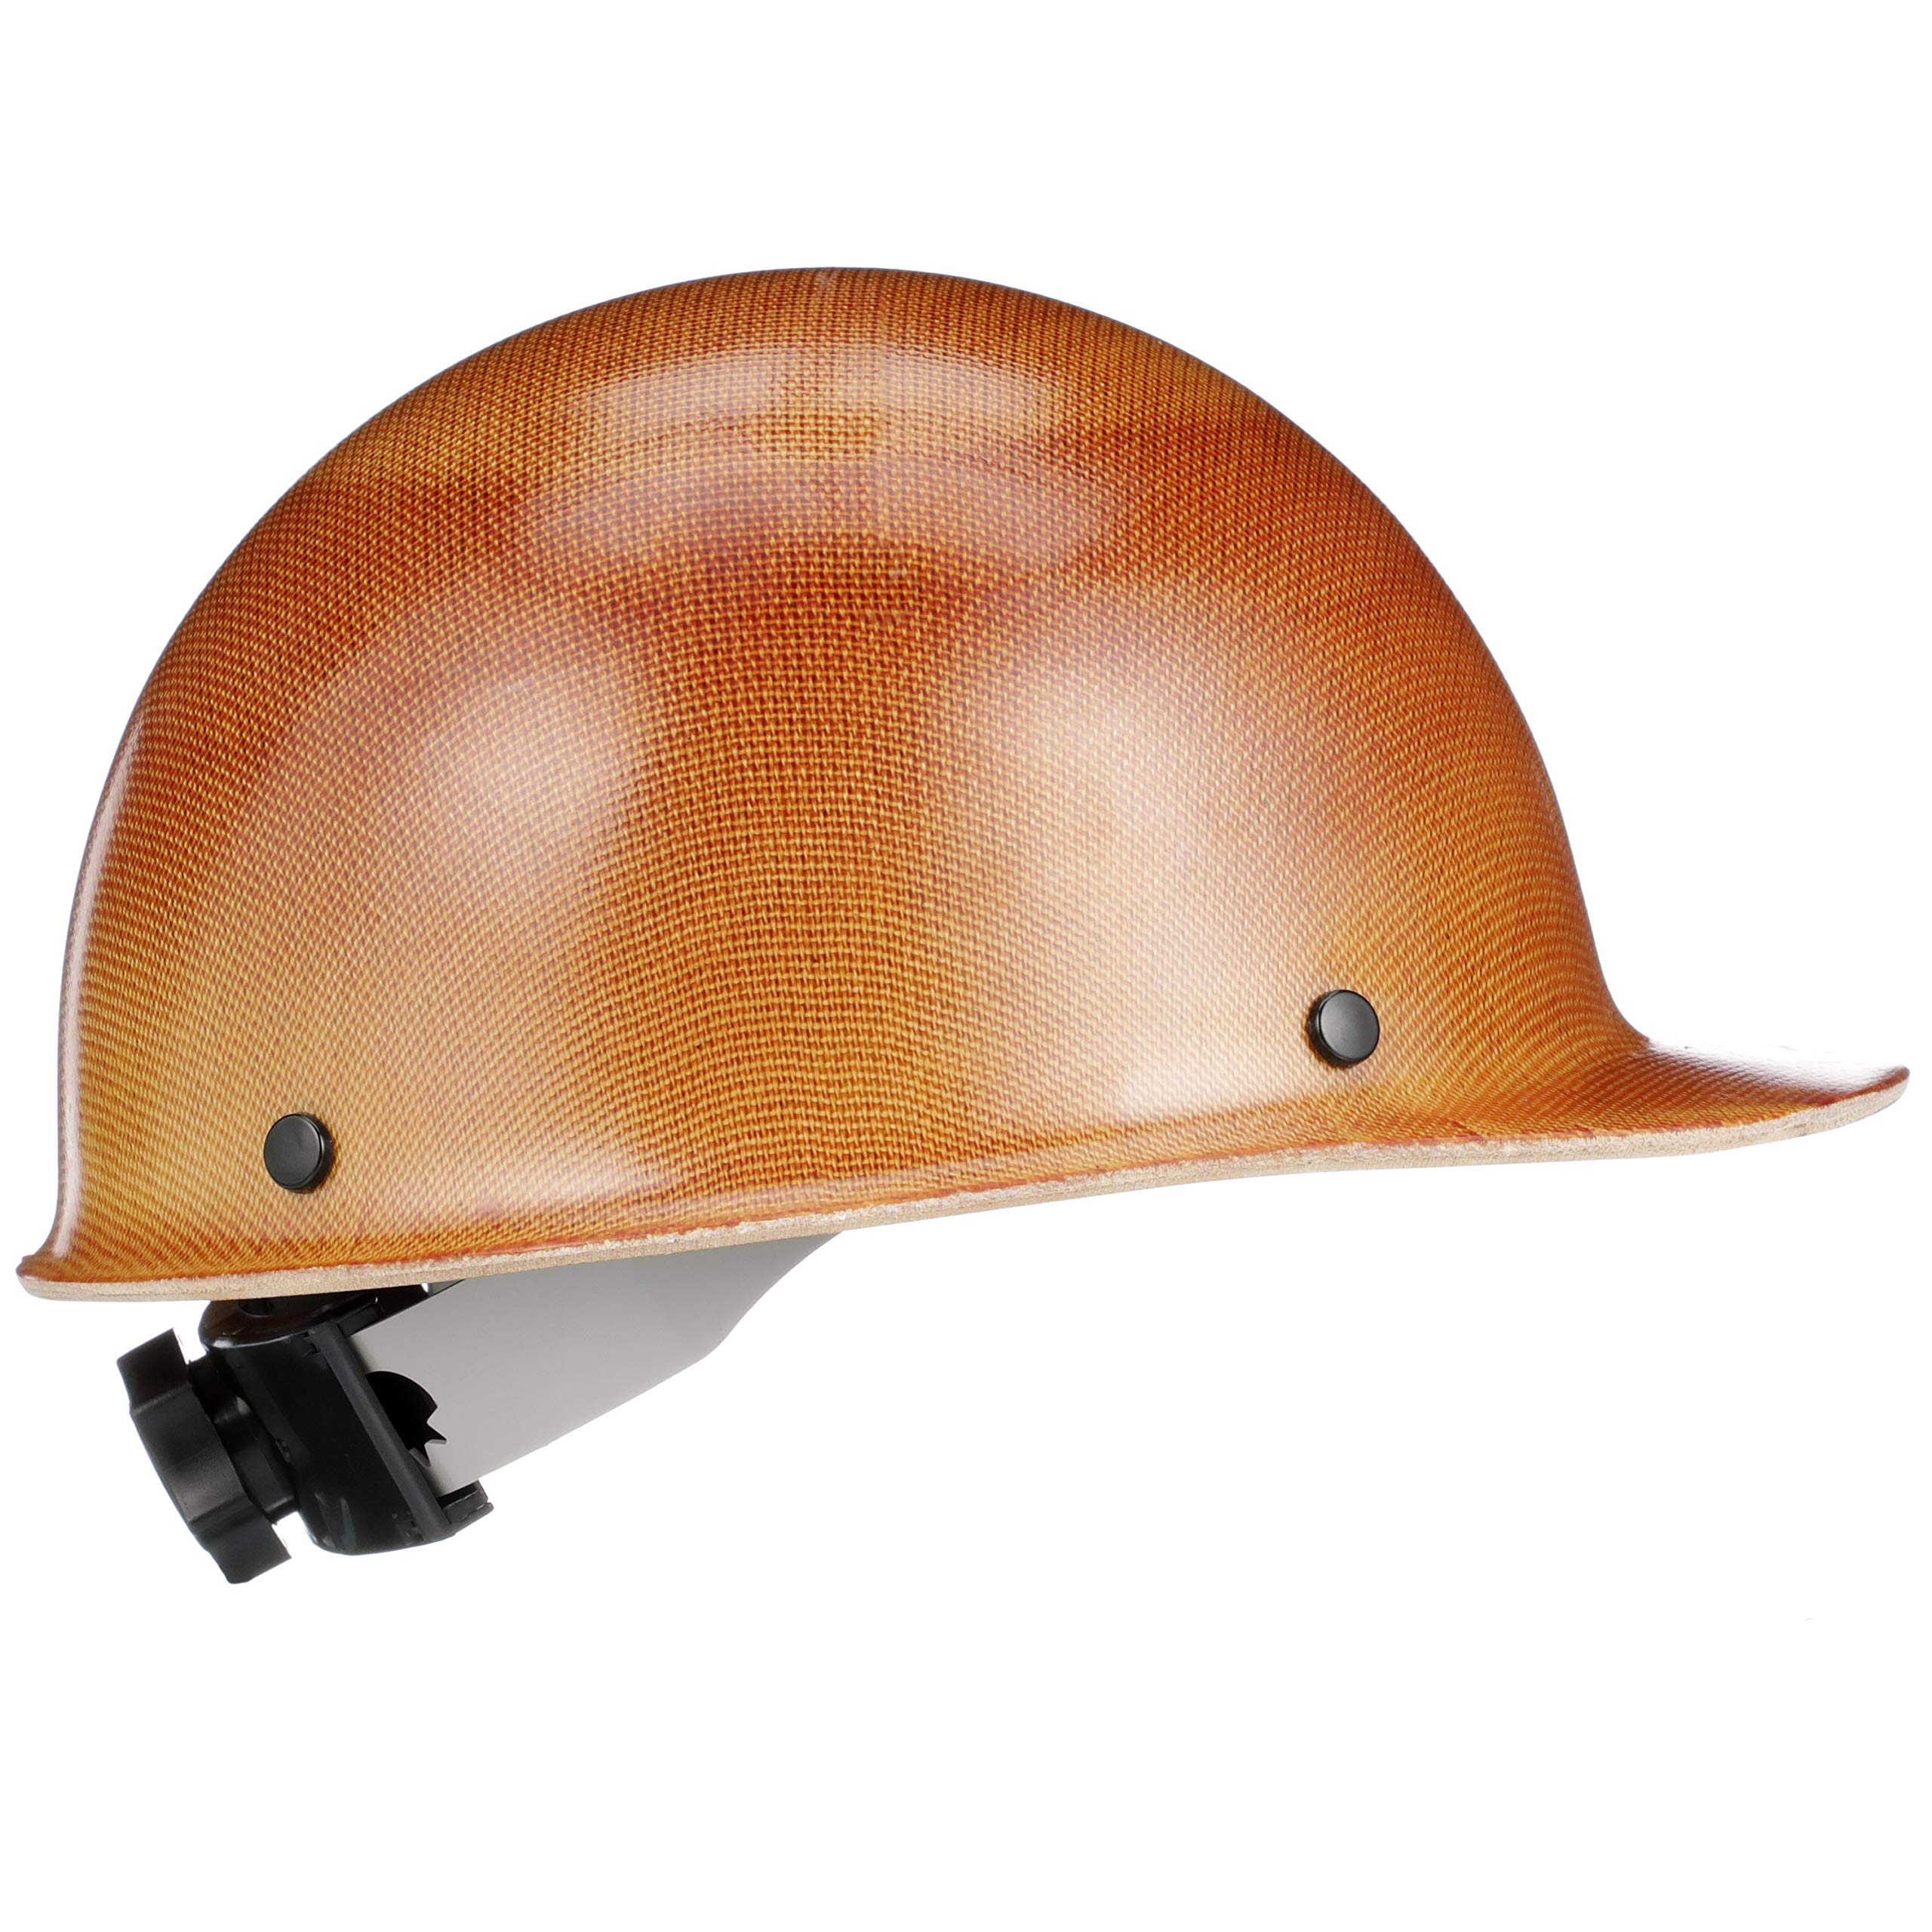 MSA 816651 Skullgard Protective Hard Hat Front Brim, Swing-Ratchet Suspension, Standard Size, Natural Tan by MSA (Image #5)